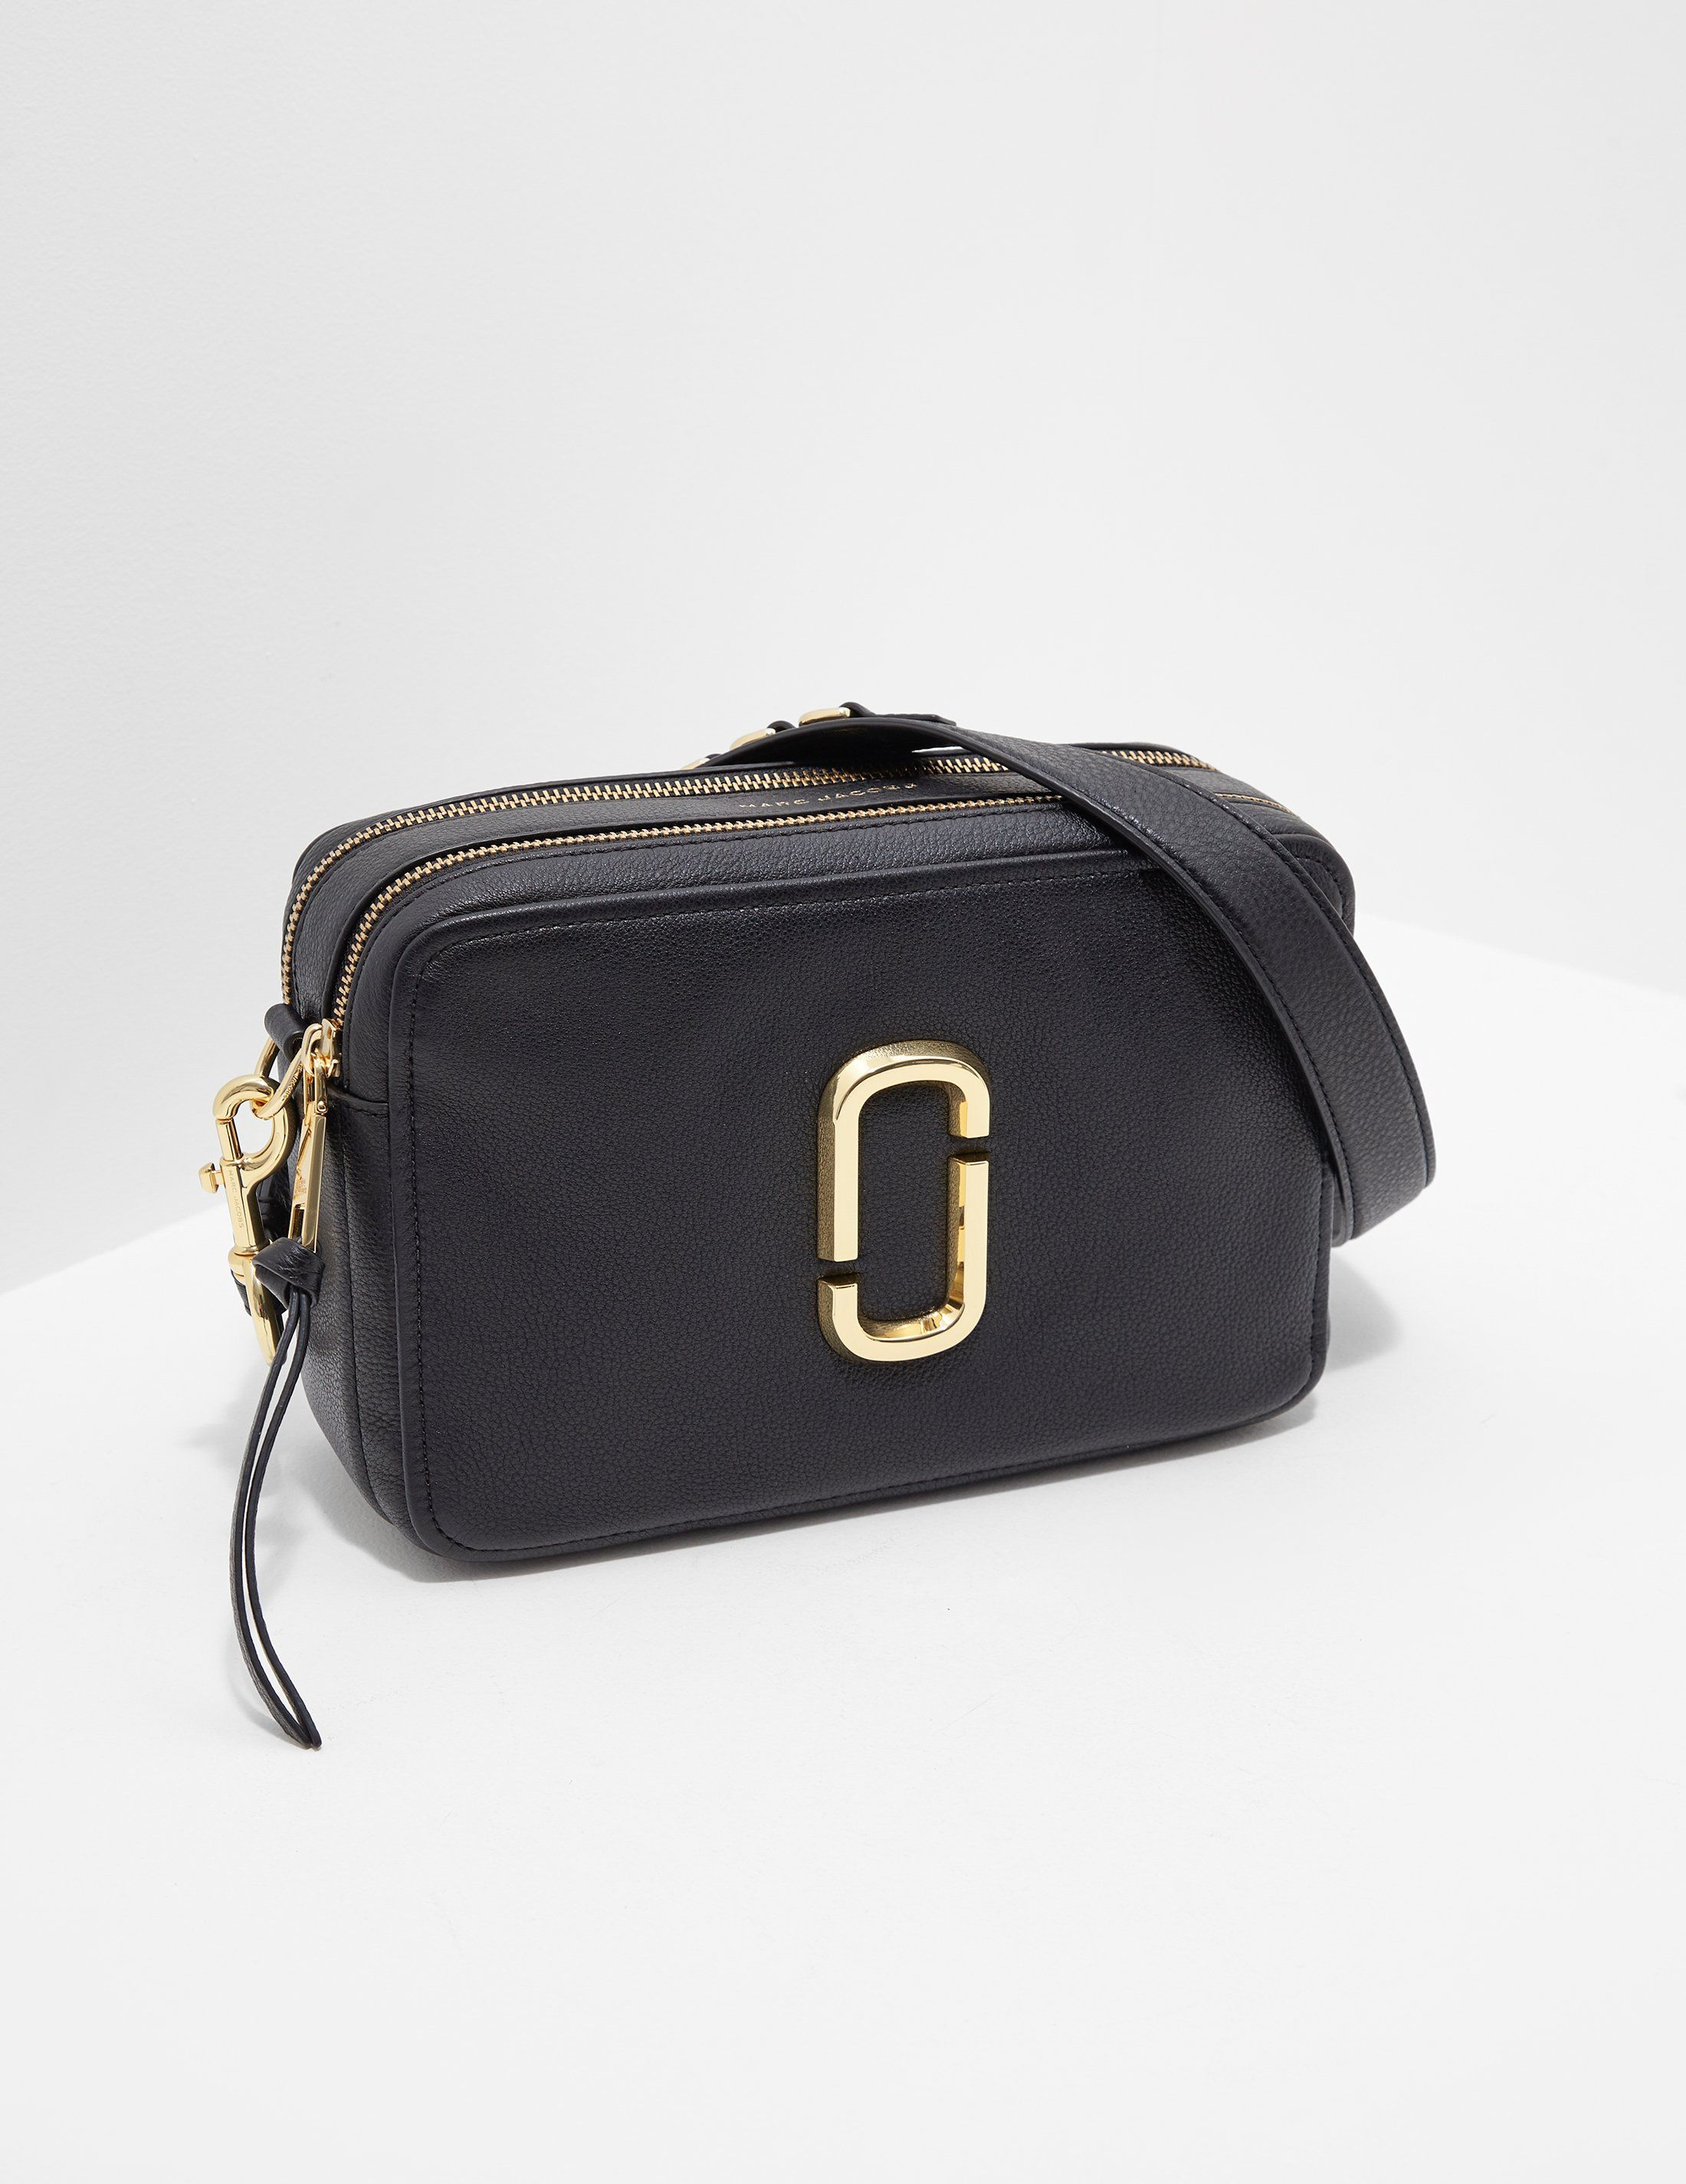 Marc Jacobs Snapshot 27 Shoulder Bag